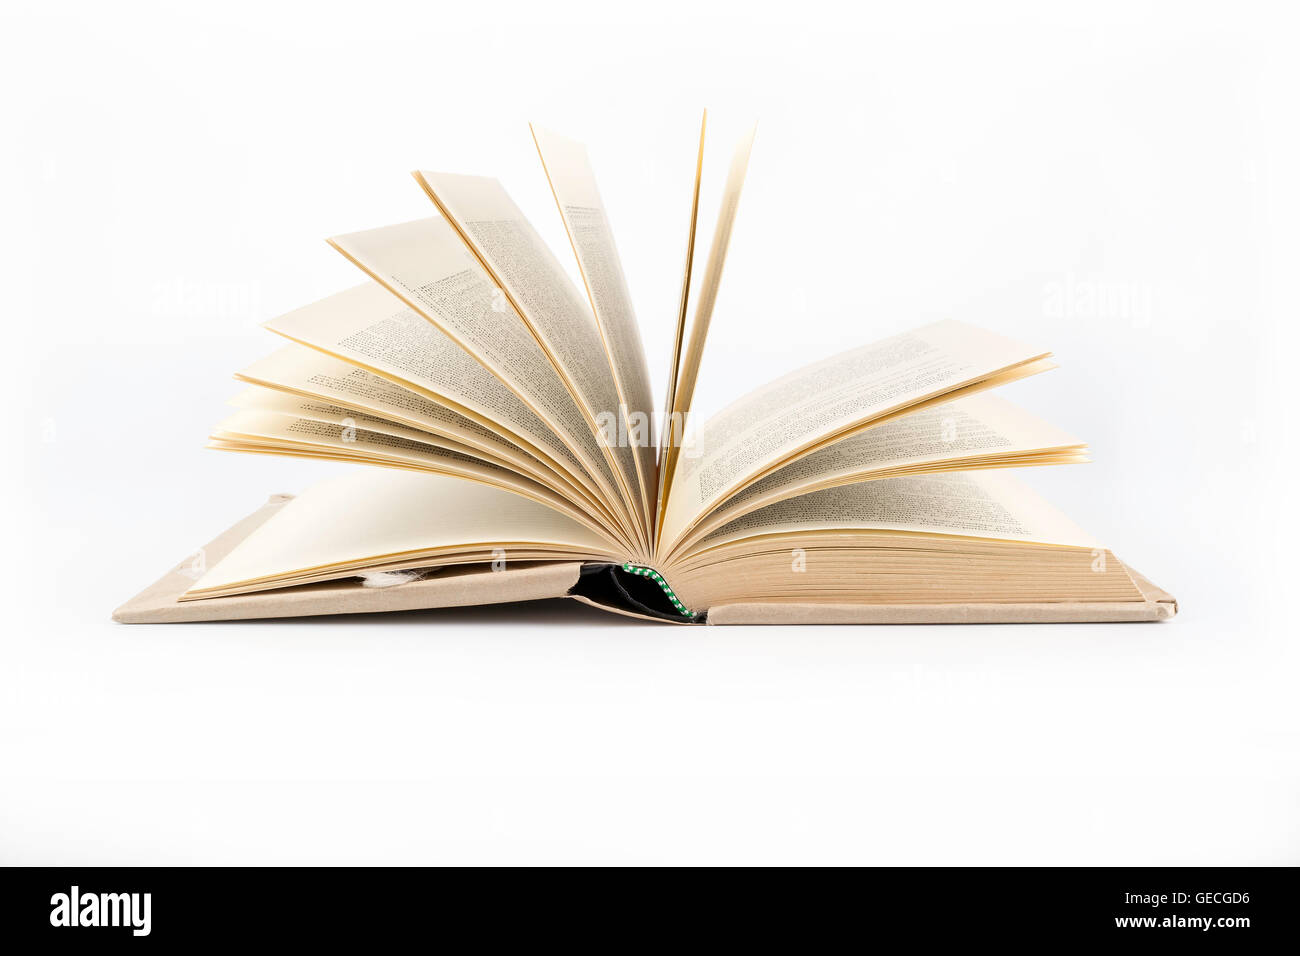 Open book on a white background - Stock Image